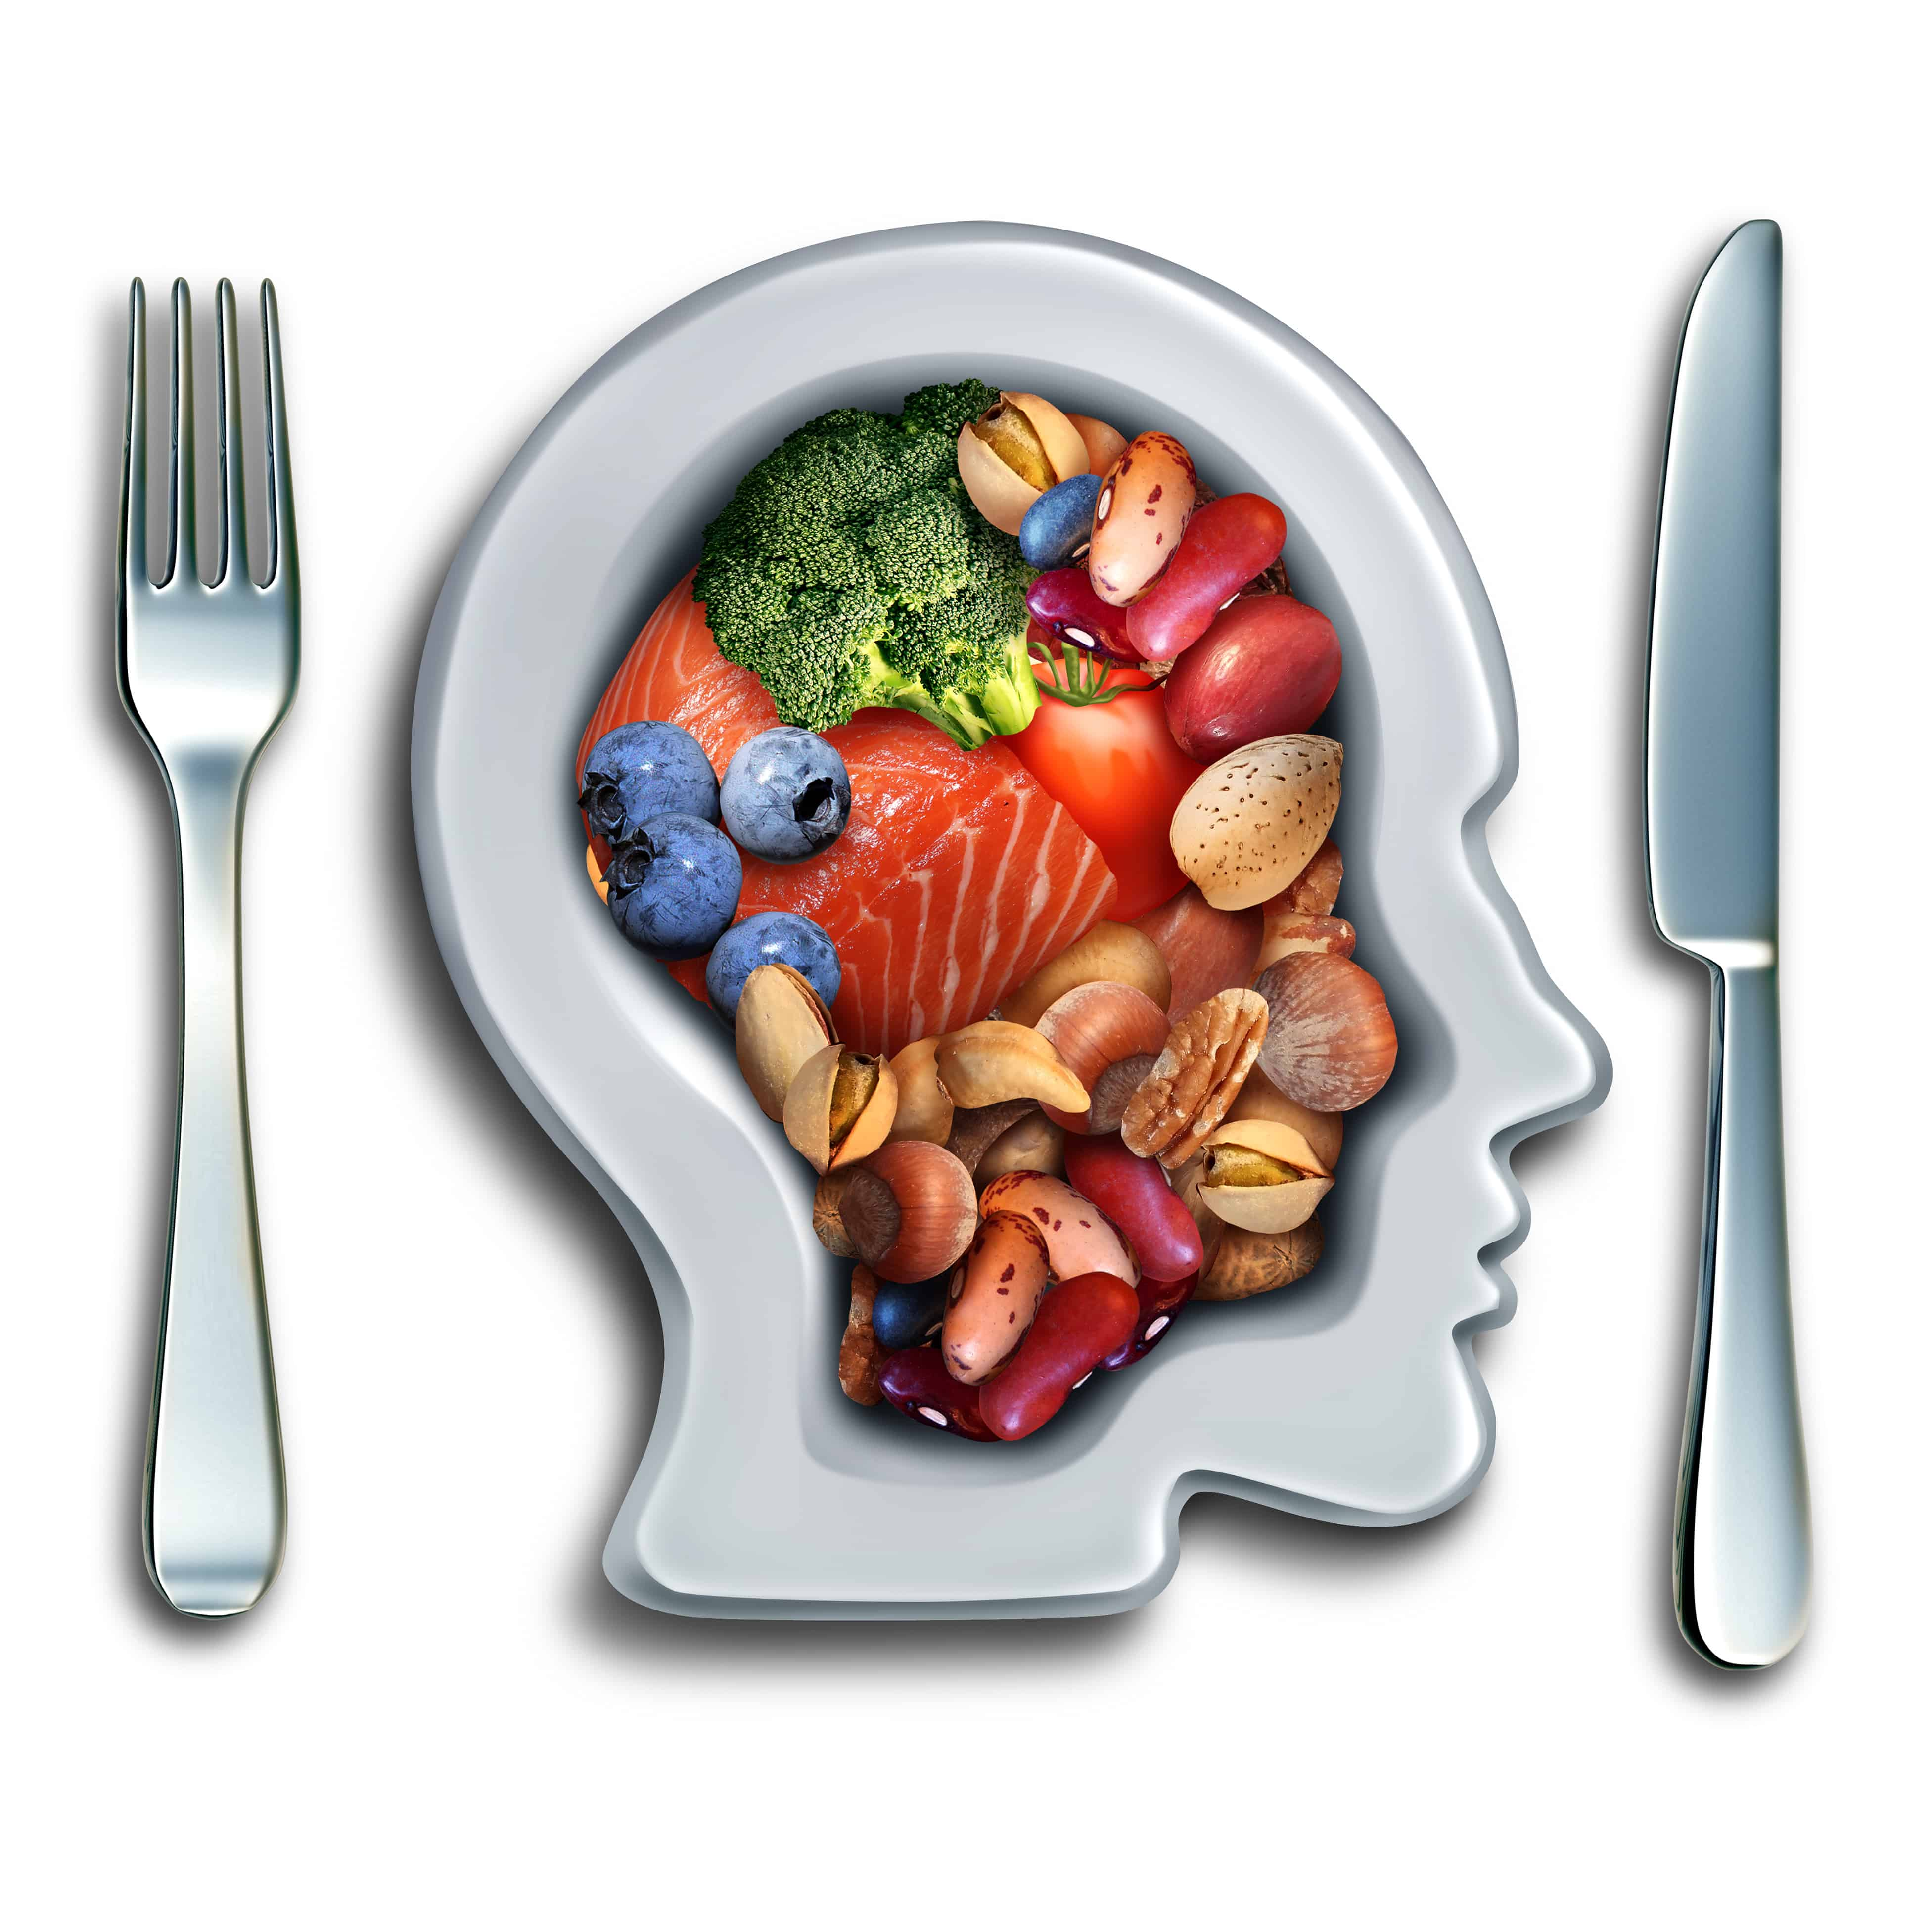 10 Brain Foods and Supplements That Will Make You Smarter